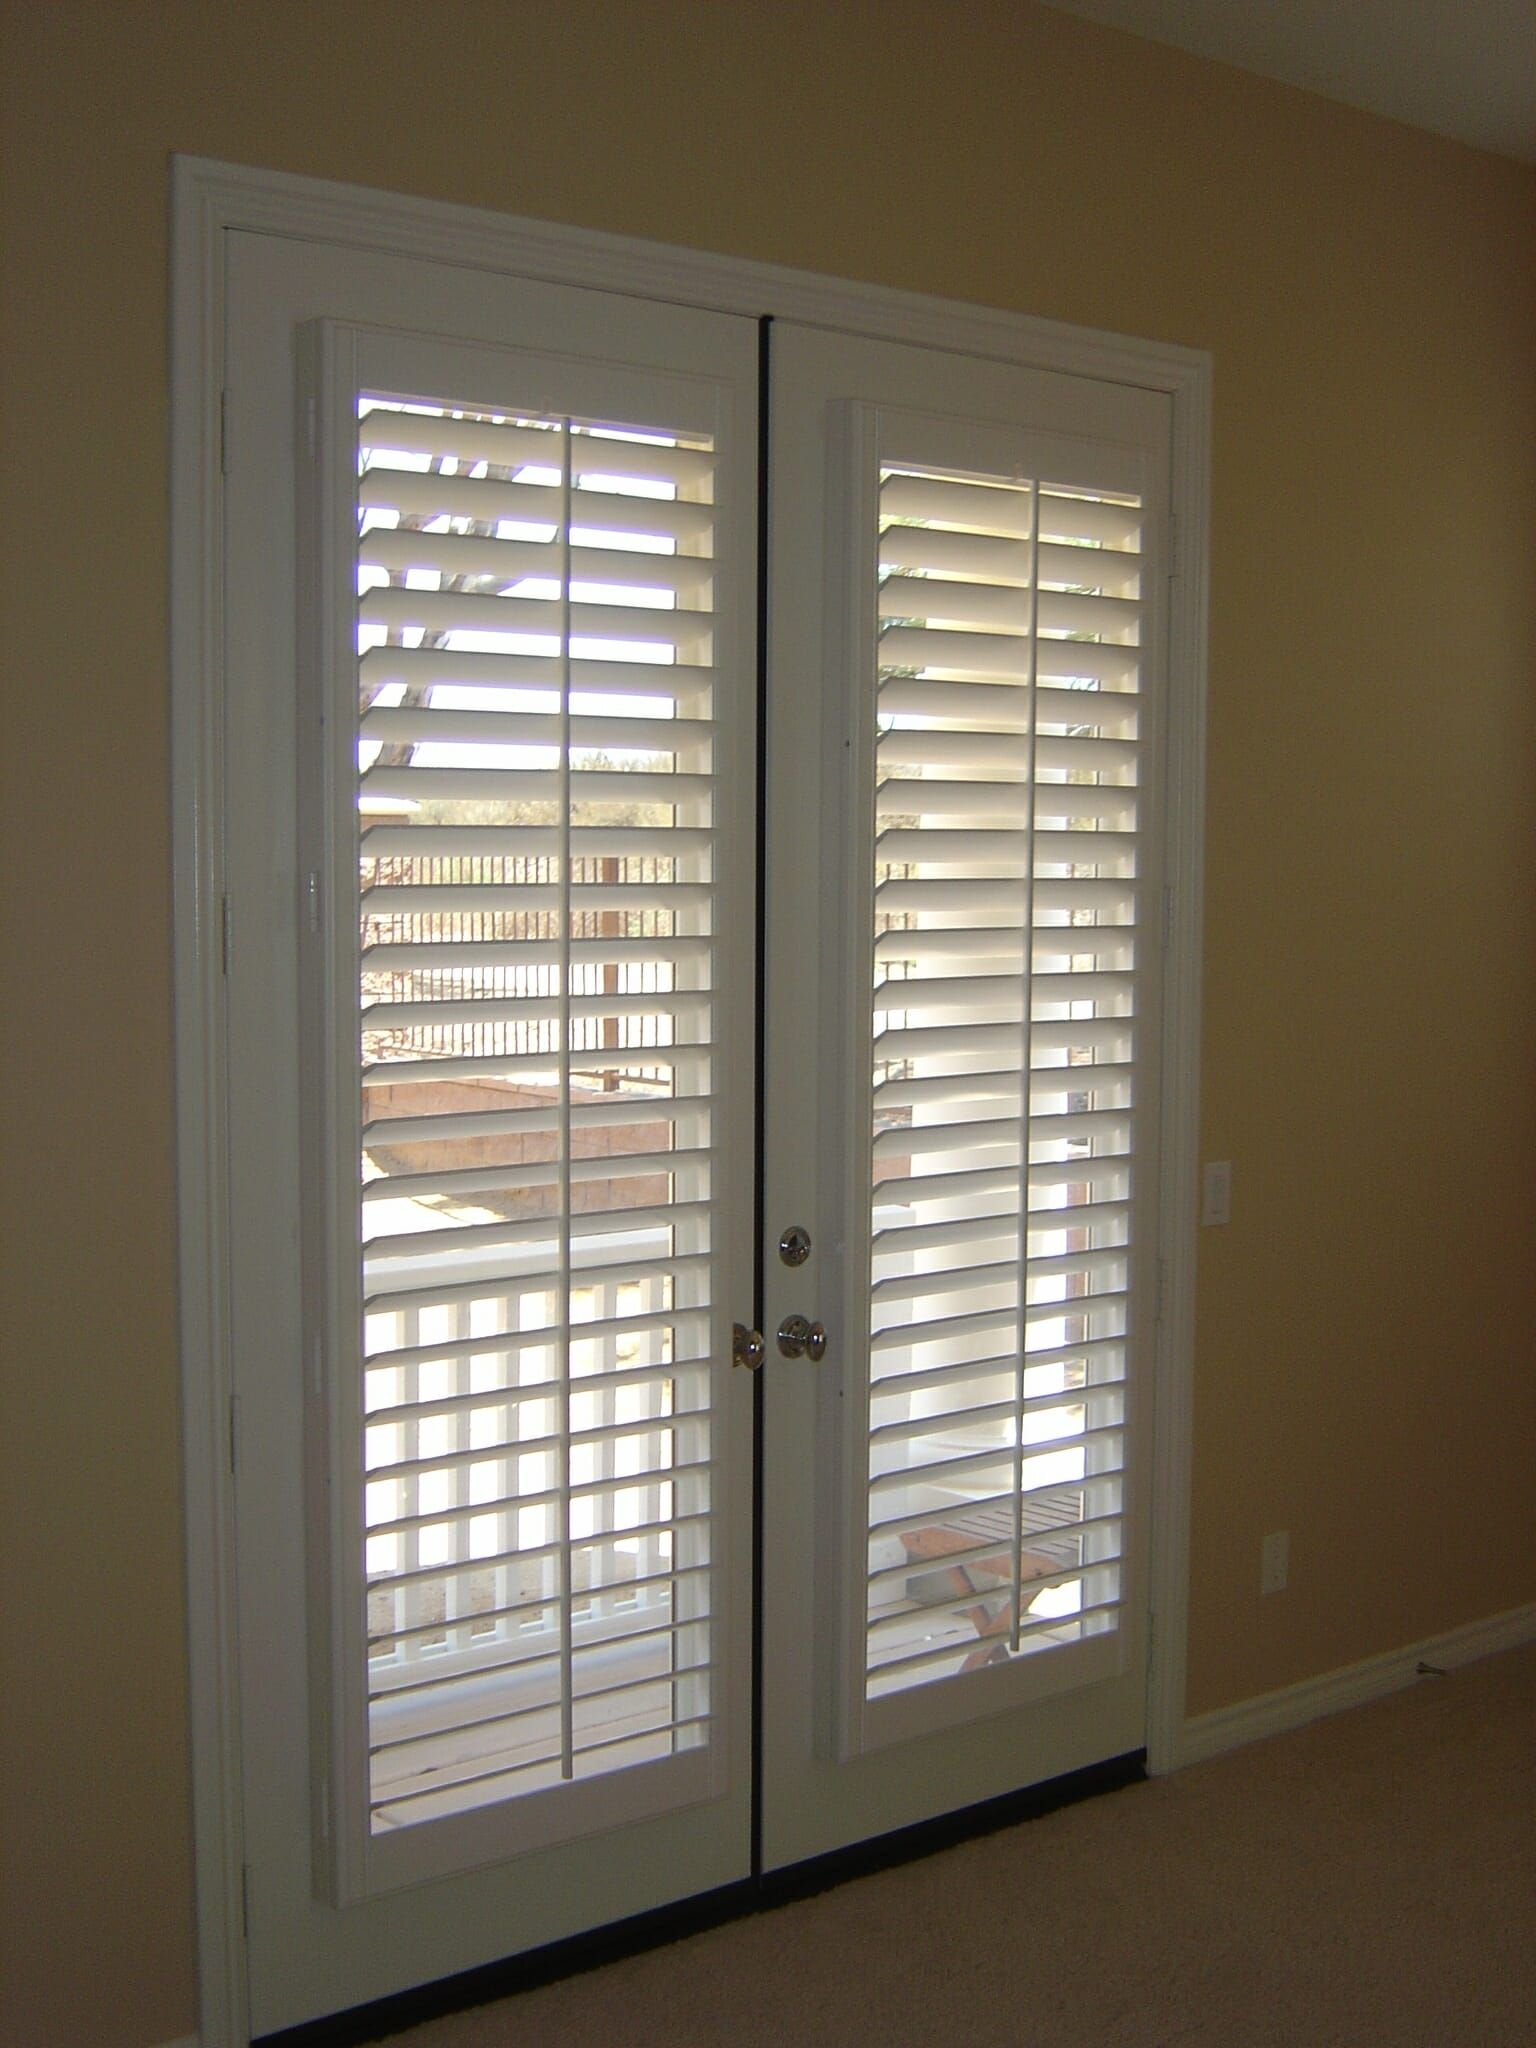 French Door Blinds Shades Patio Sliding Glass Window Treatments Blinds For French Doors French Doors Interior French Door Window Treatments